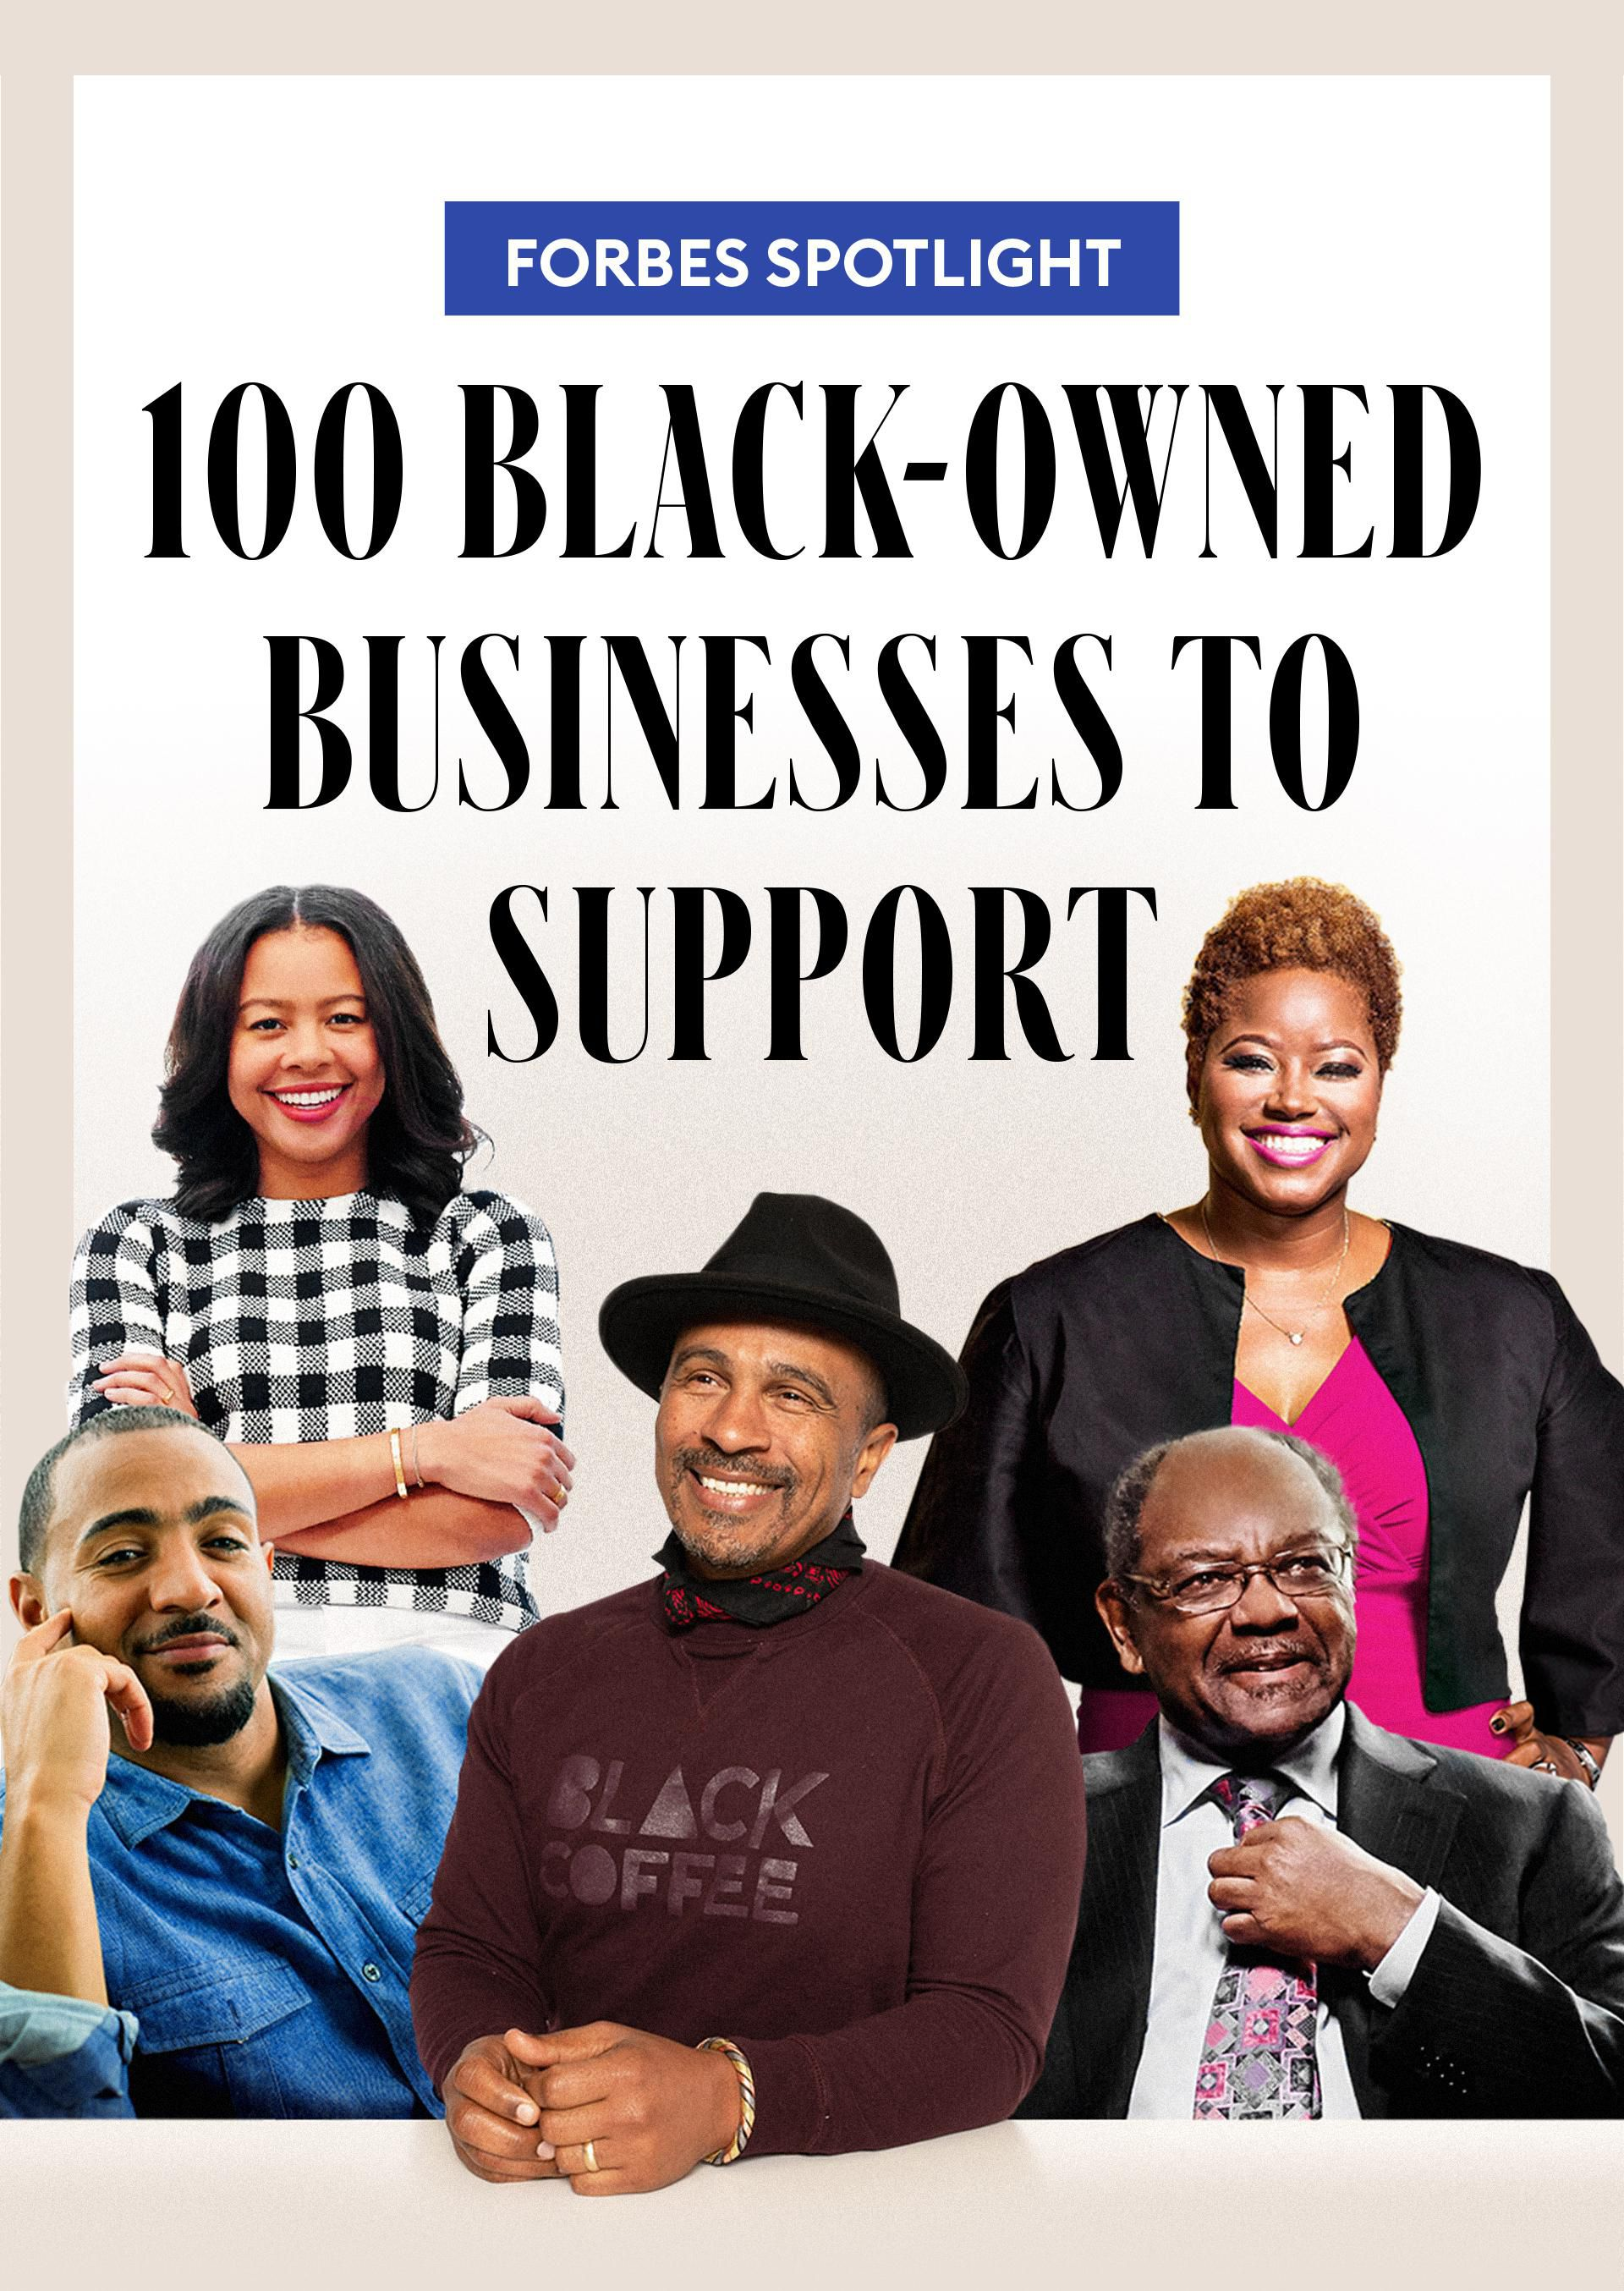 Forbes Spotlight | 100 Black-Owned Businesses to Support